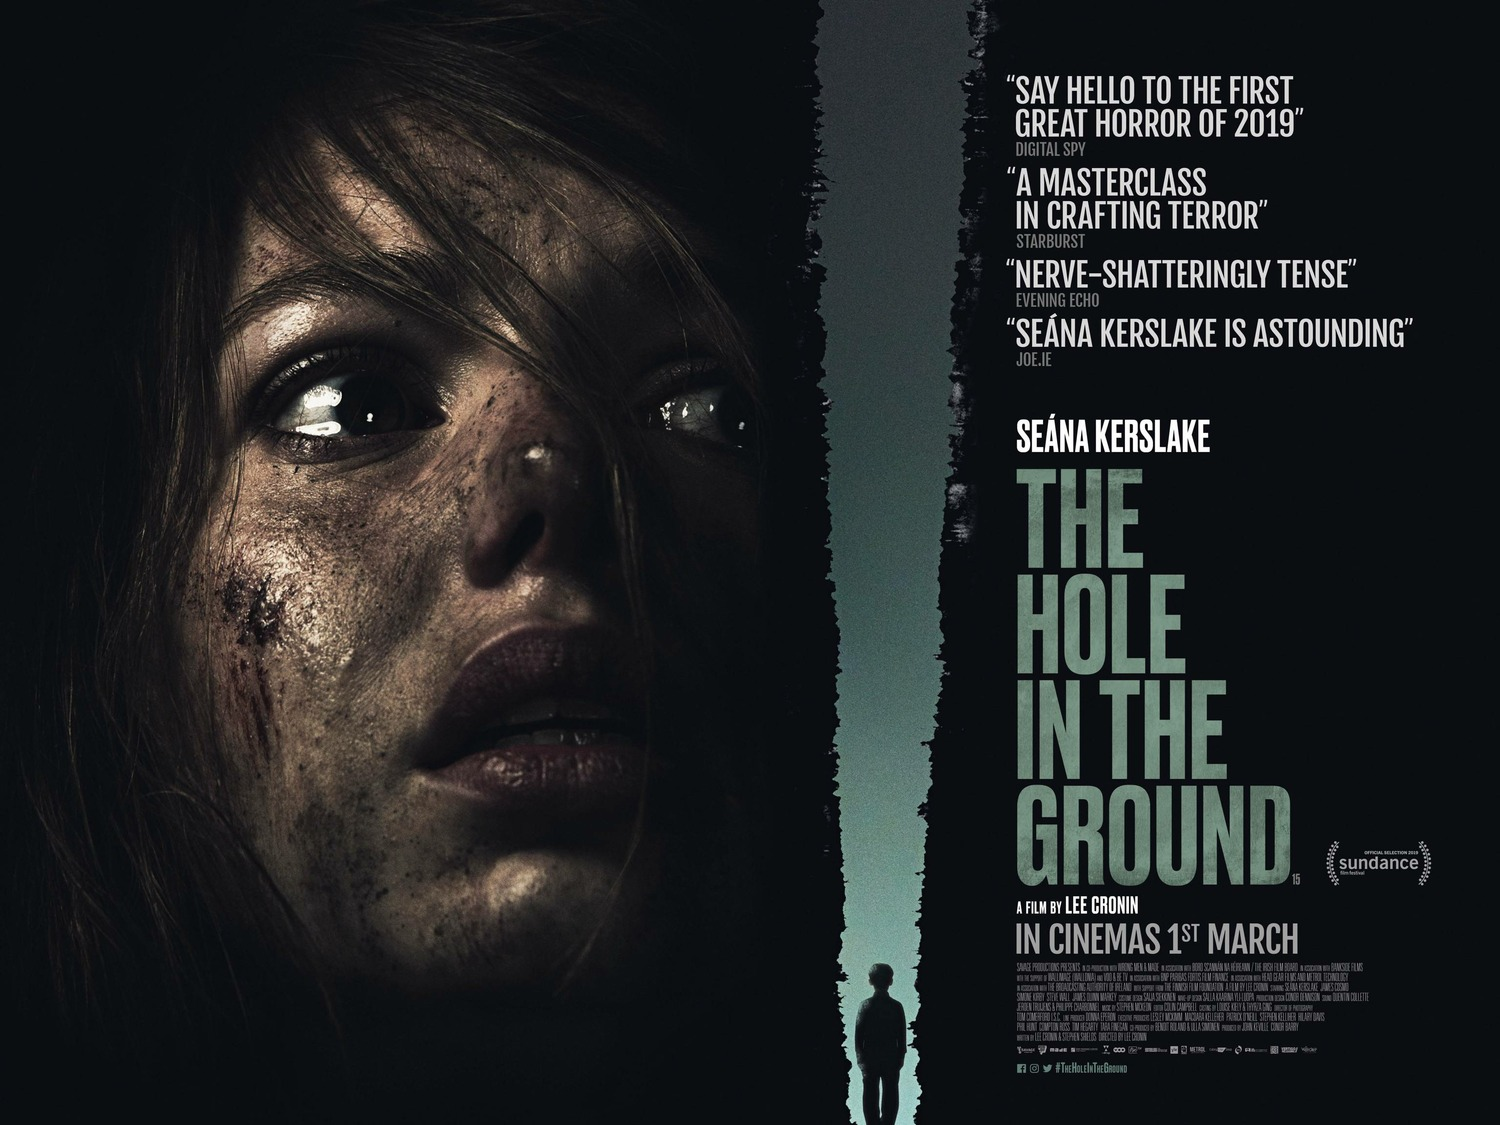 Extra Large Movie Poster Image for The Hole in the Ground (#2 of 4)